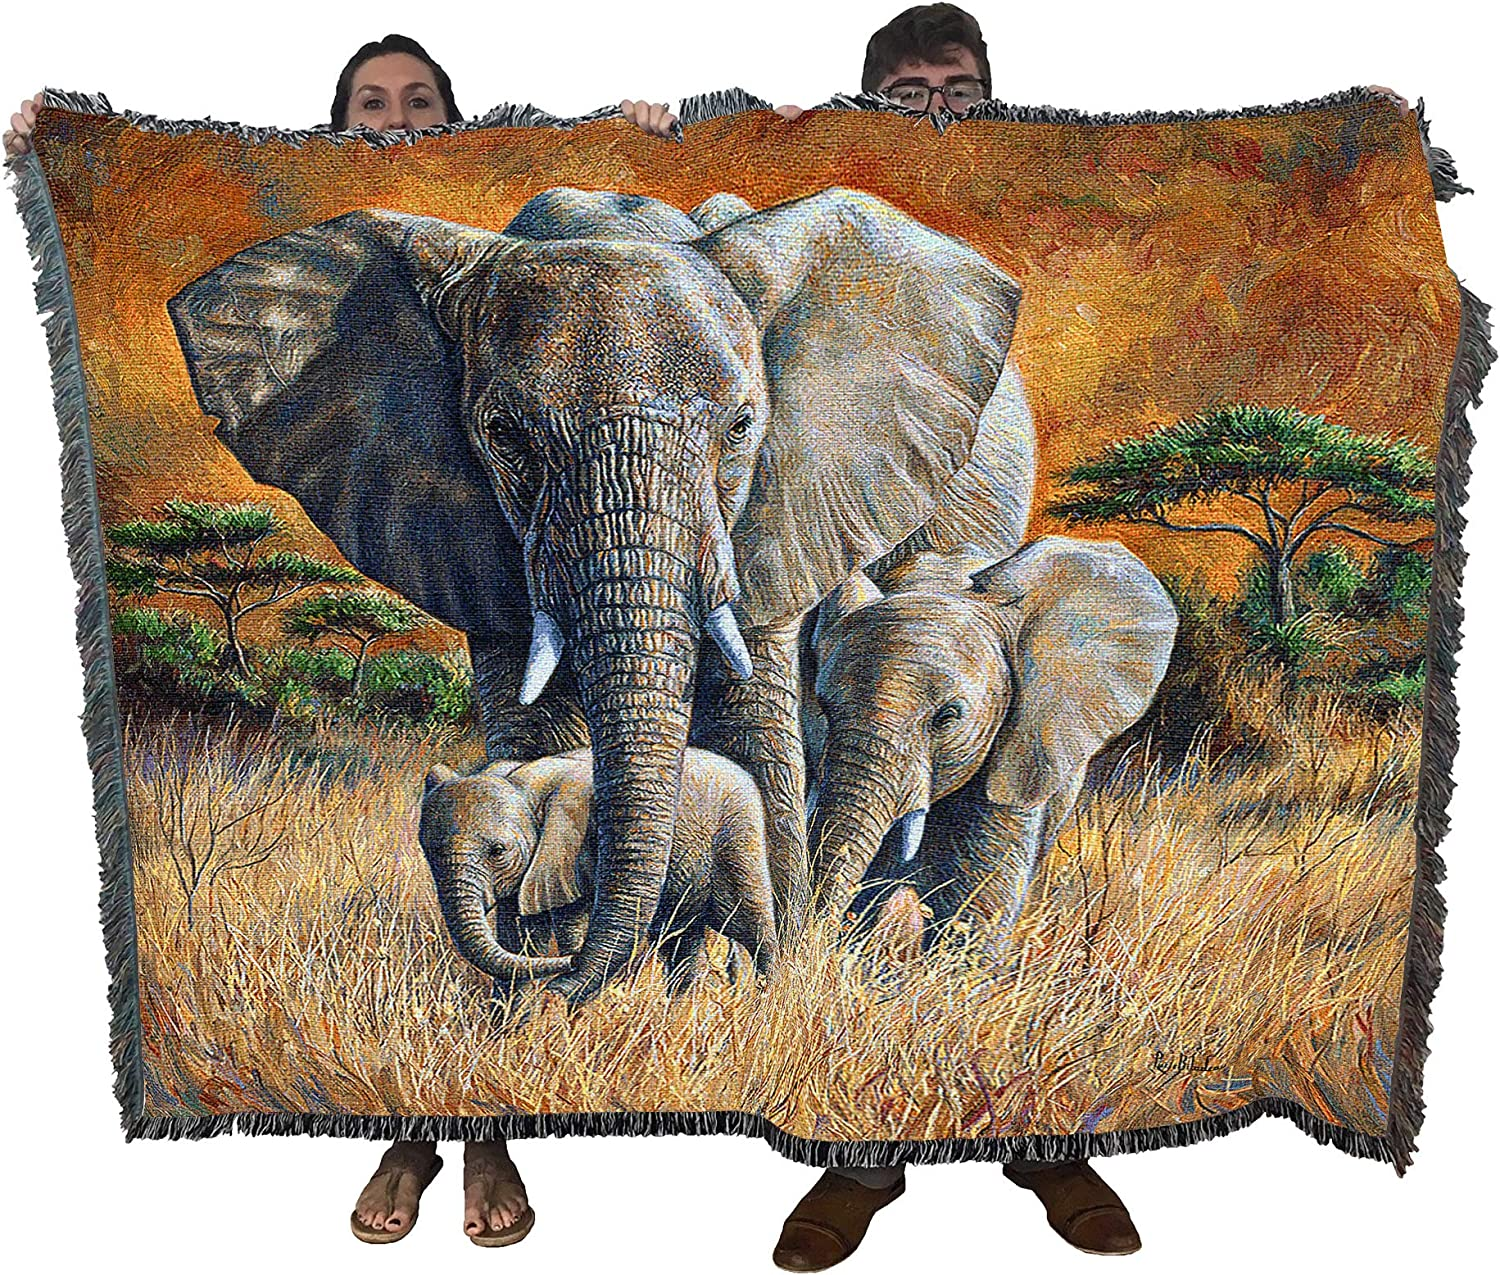 Amazon Com Loving Mother Elephant And Calf Lucie Bilodeau Blanket Throw Woven From Cotton Made In The Usa 72x54 Kitchen Dining